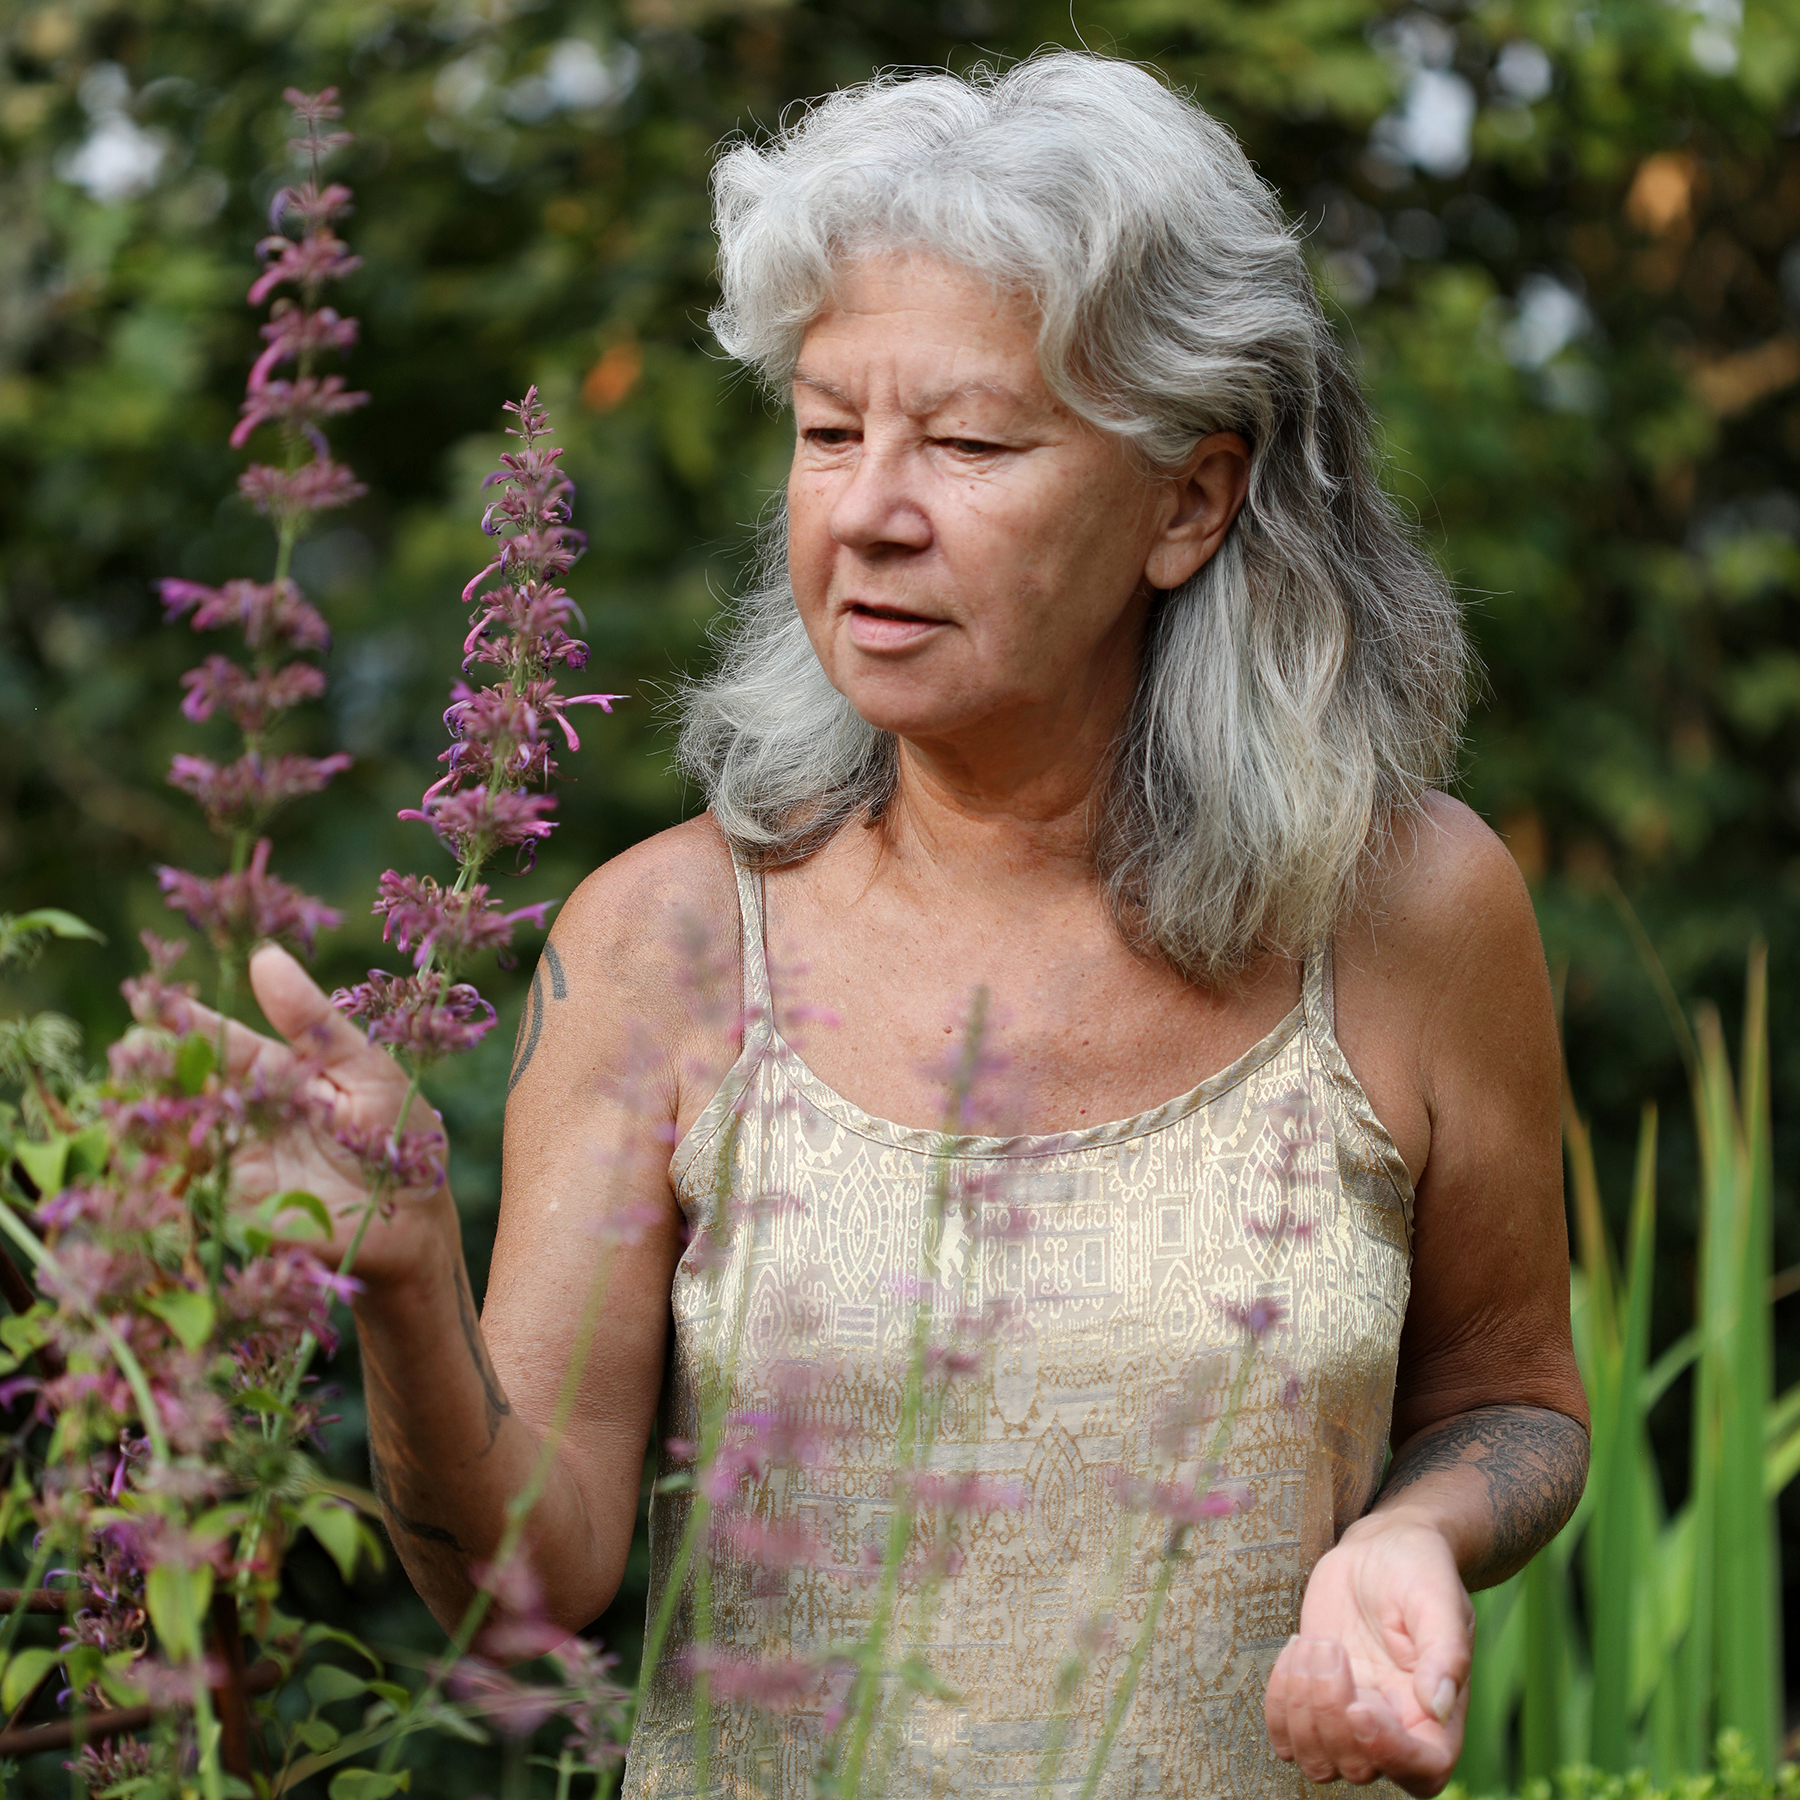 Mountain Rose Herbs co-owner Julie Baliey walks through her home garden of herbs in Eugene, Oregon.